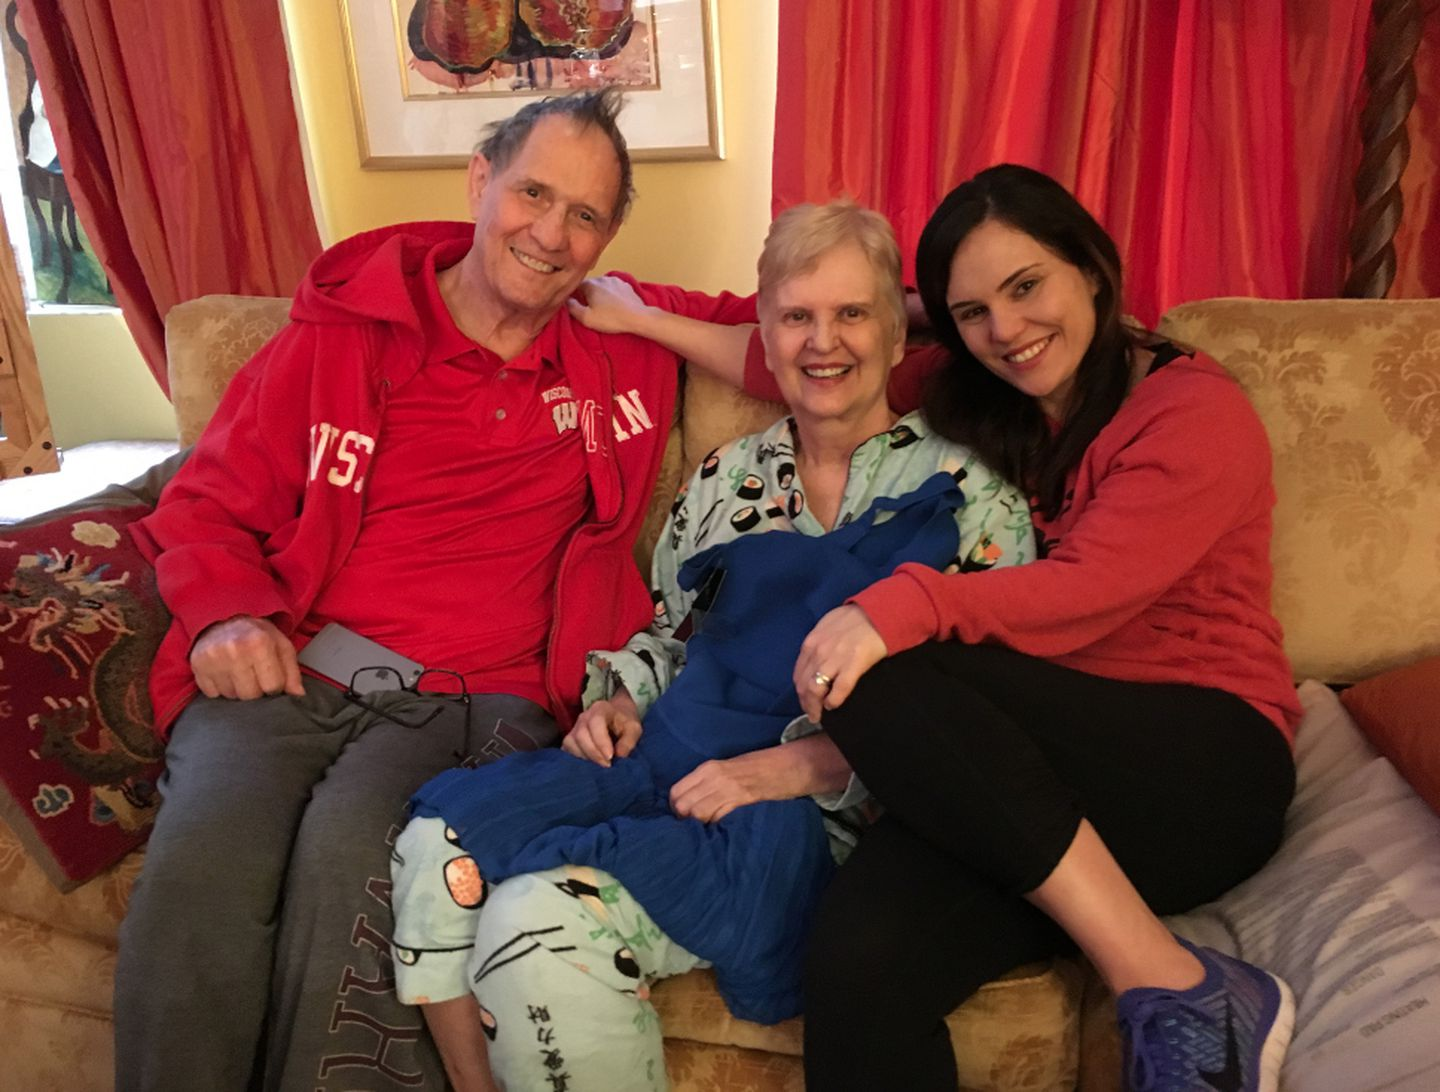 Laura at home with her parents, Bill and Georgia Levis, in their Manhattan apartment. Laura's mother passed away this July, after a long battle with cancer.